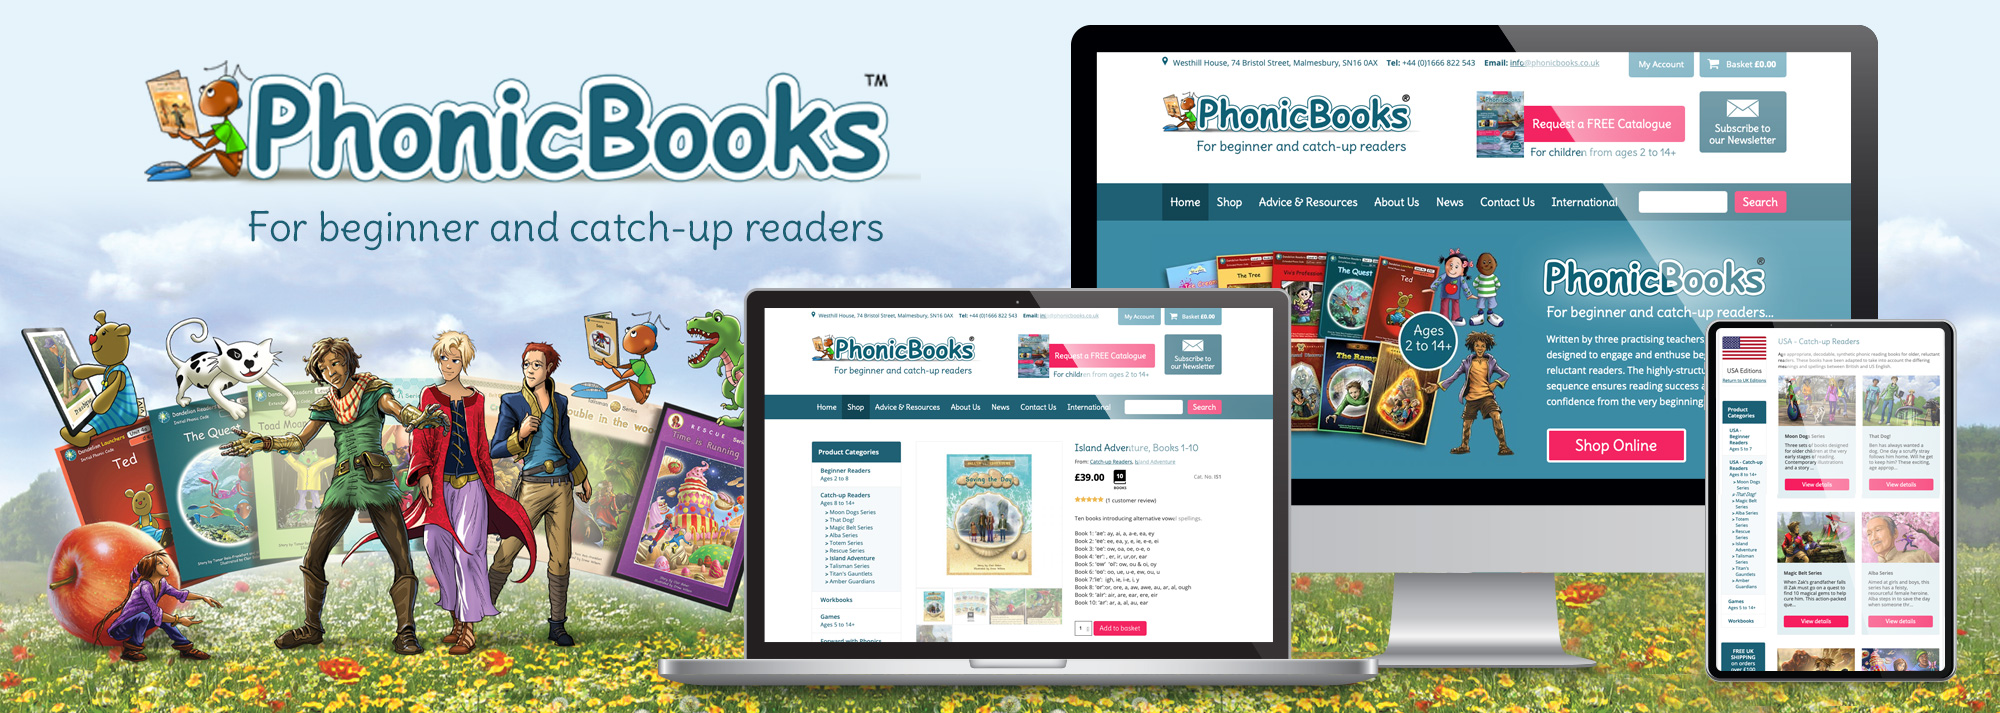 Phonic Books eCommerce Website